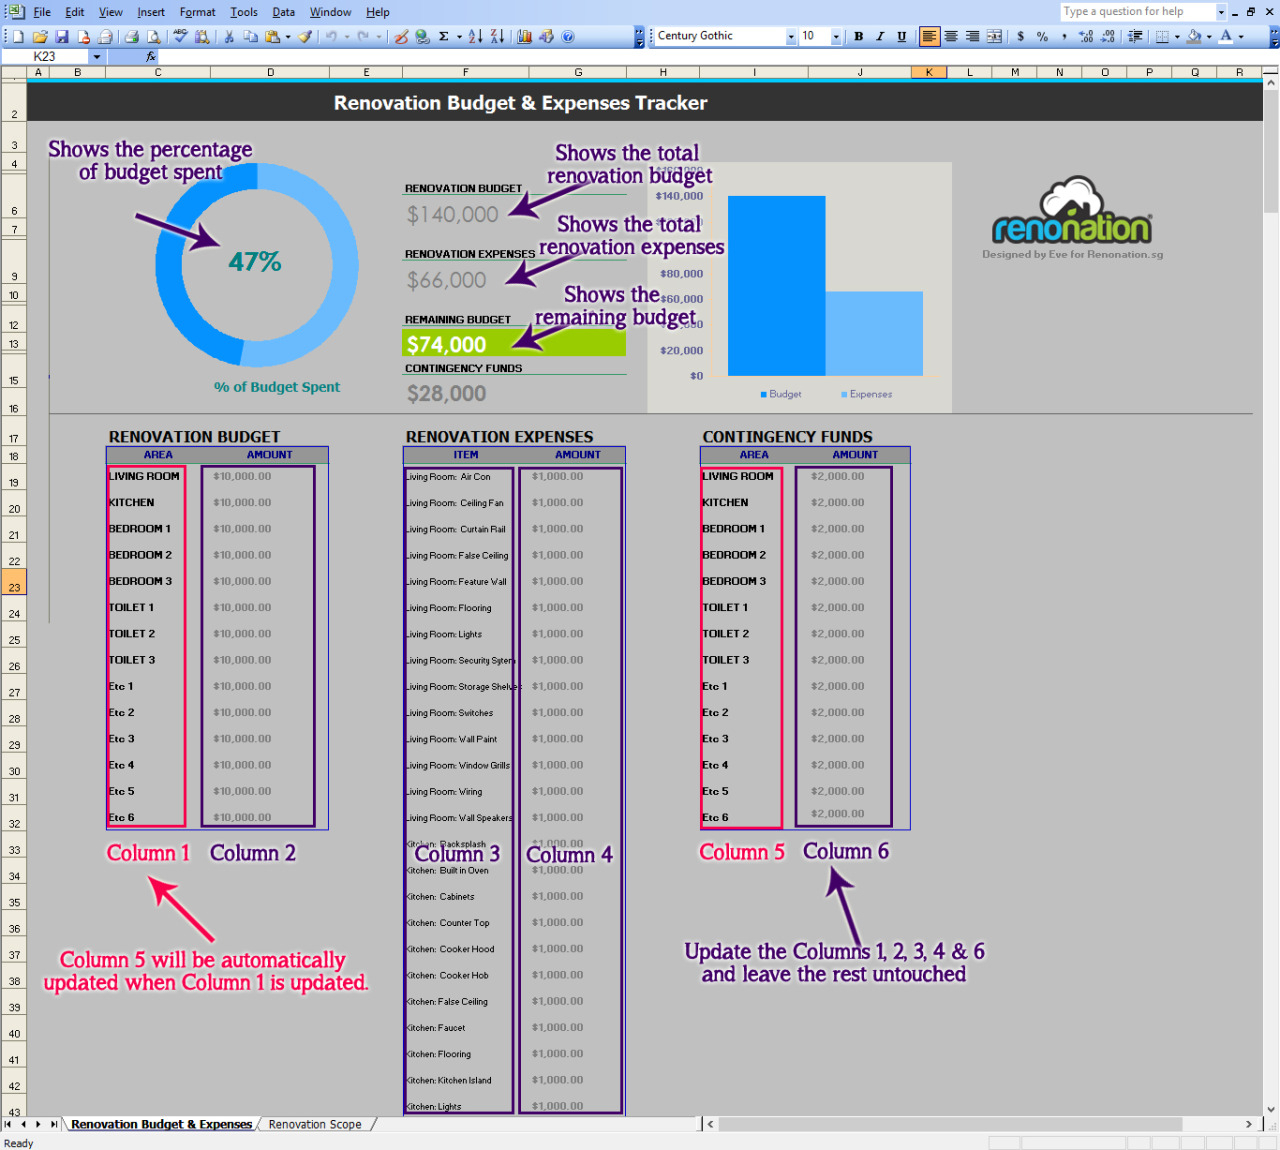 Excel Spreadsheet Formulas For Budgeting With Regard To Renovation Budget  Expenses Tracker